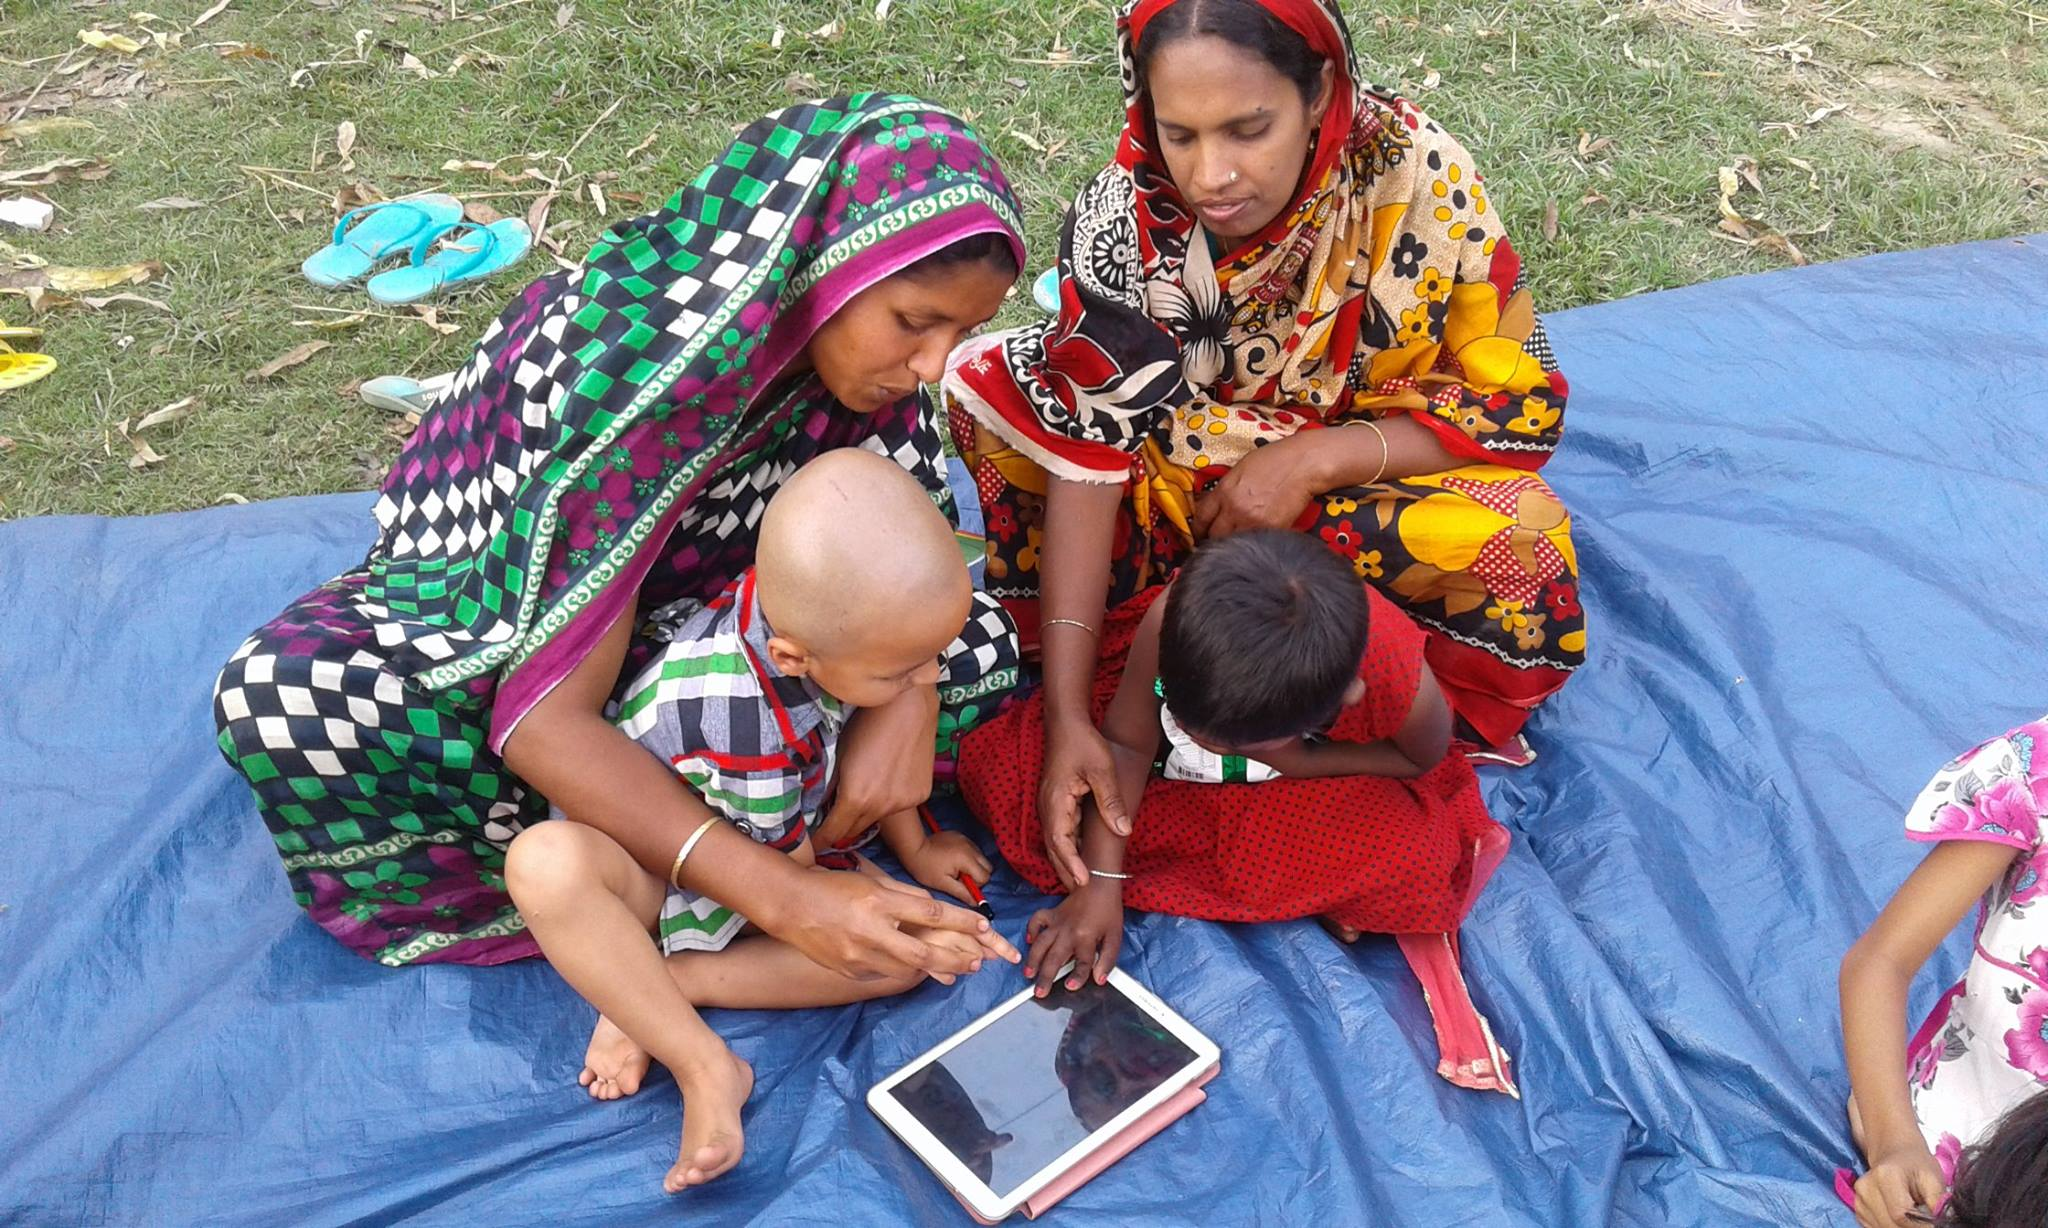 Mothers use tablets with their children